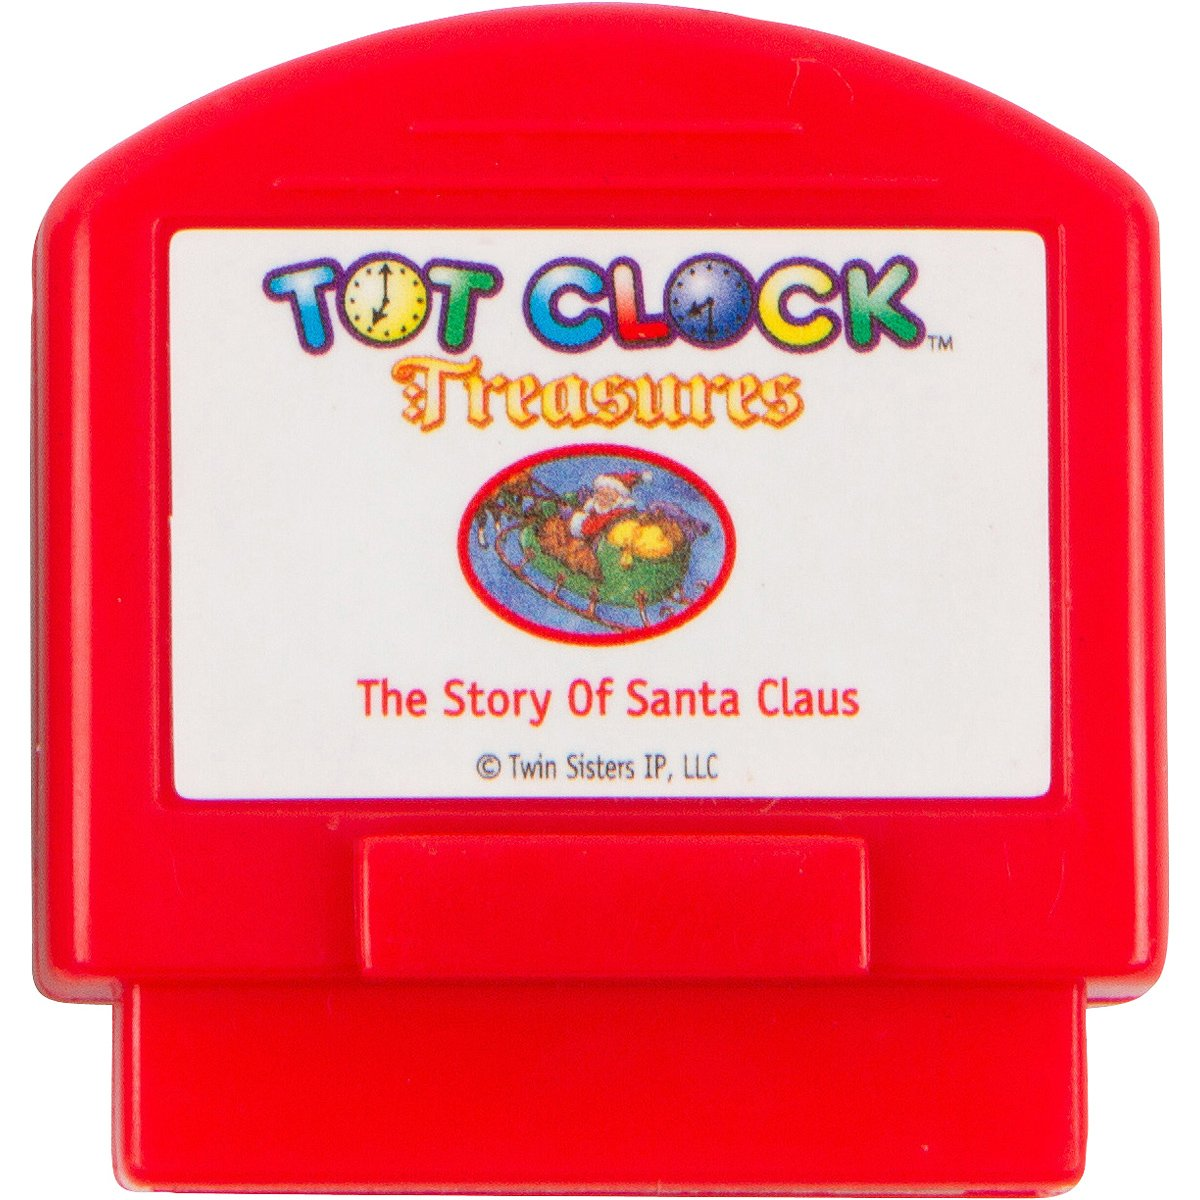 Tot Clock Treasures: Christmas Set (Twas The Night Before Christmas and the Story of Santa Claus) (compatible with New & Improved Tot Clock only)